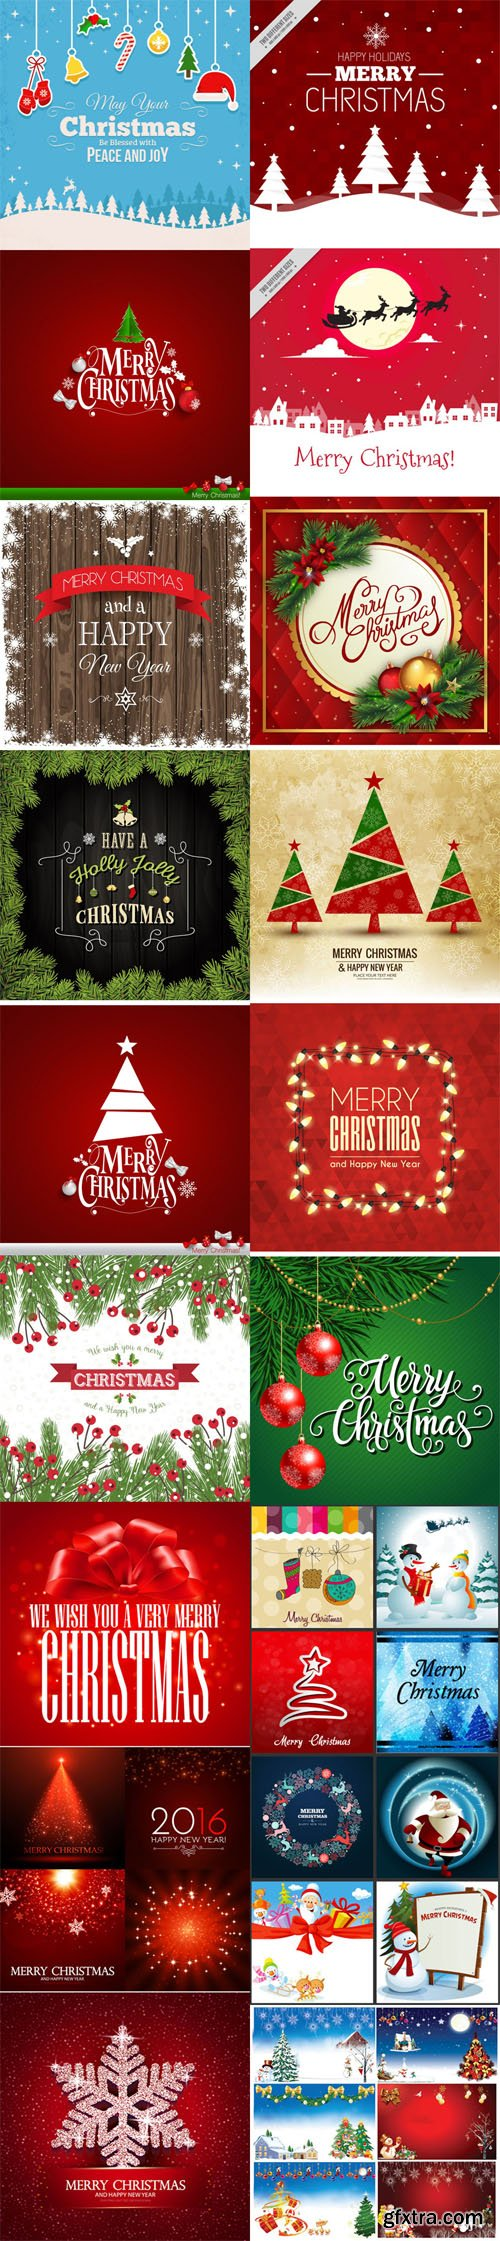 Christmas Backgrounds Vector Collection 1 [Ai/EPS/PSD]